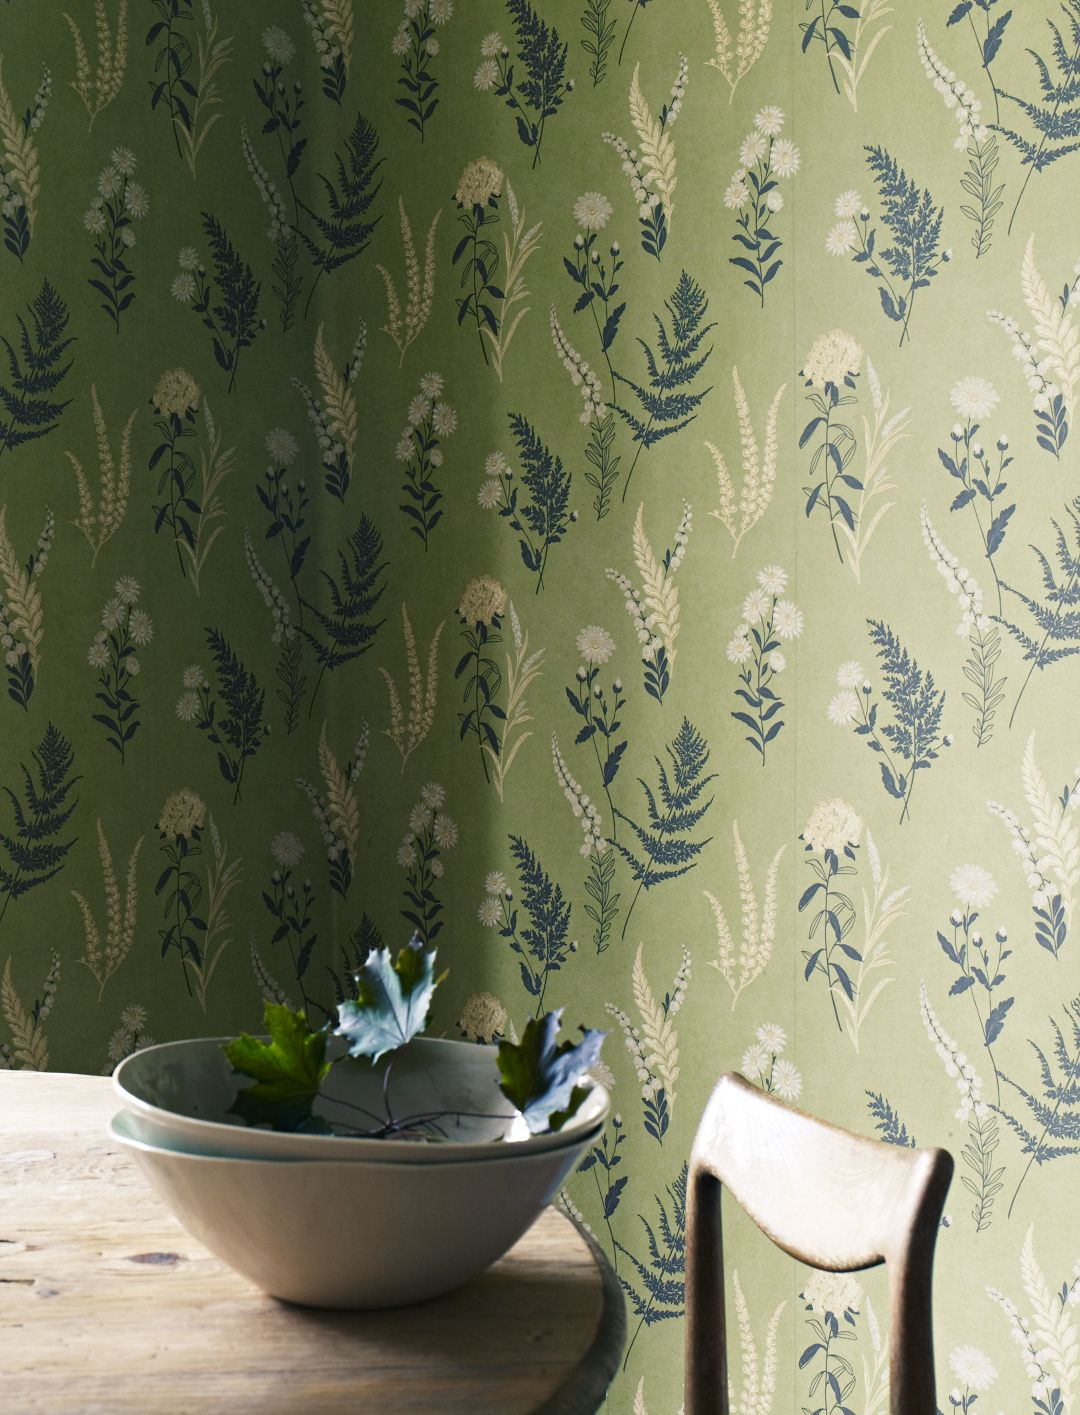 Louisa Grey Fired Earth New Wallpapers 如涵 Wallpaper Decor